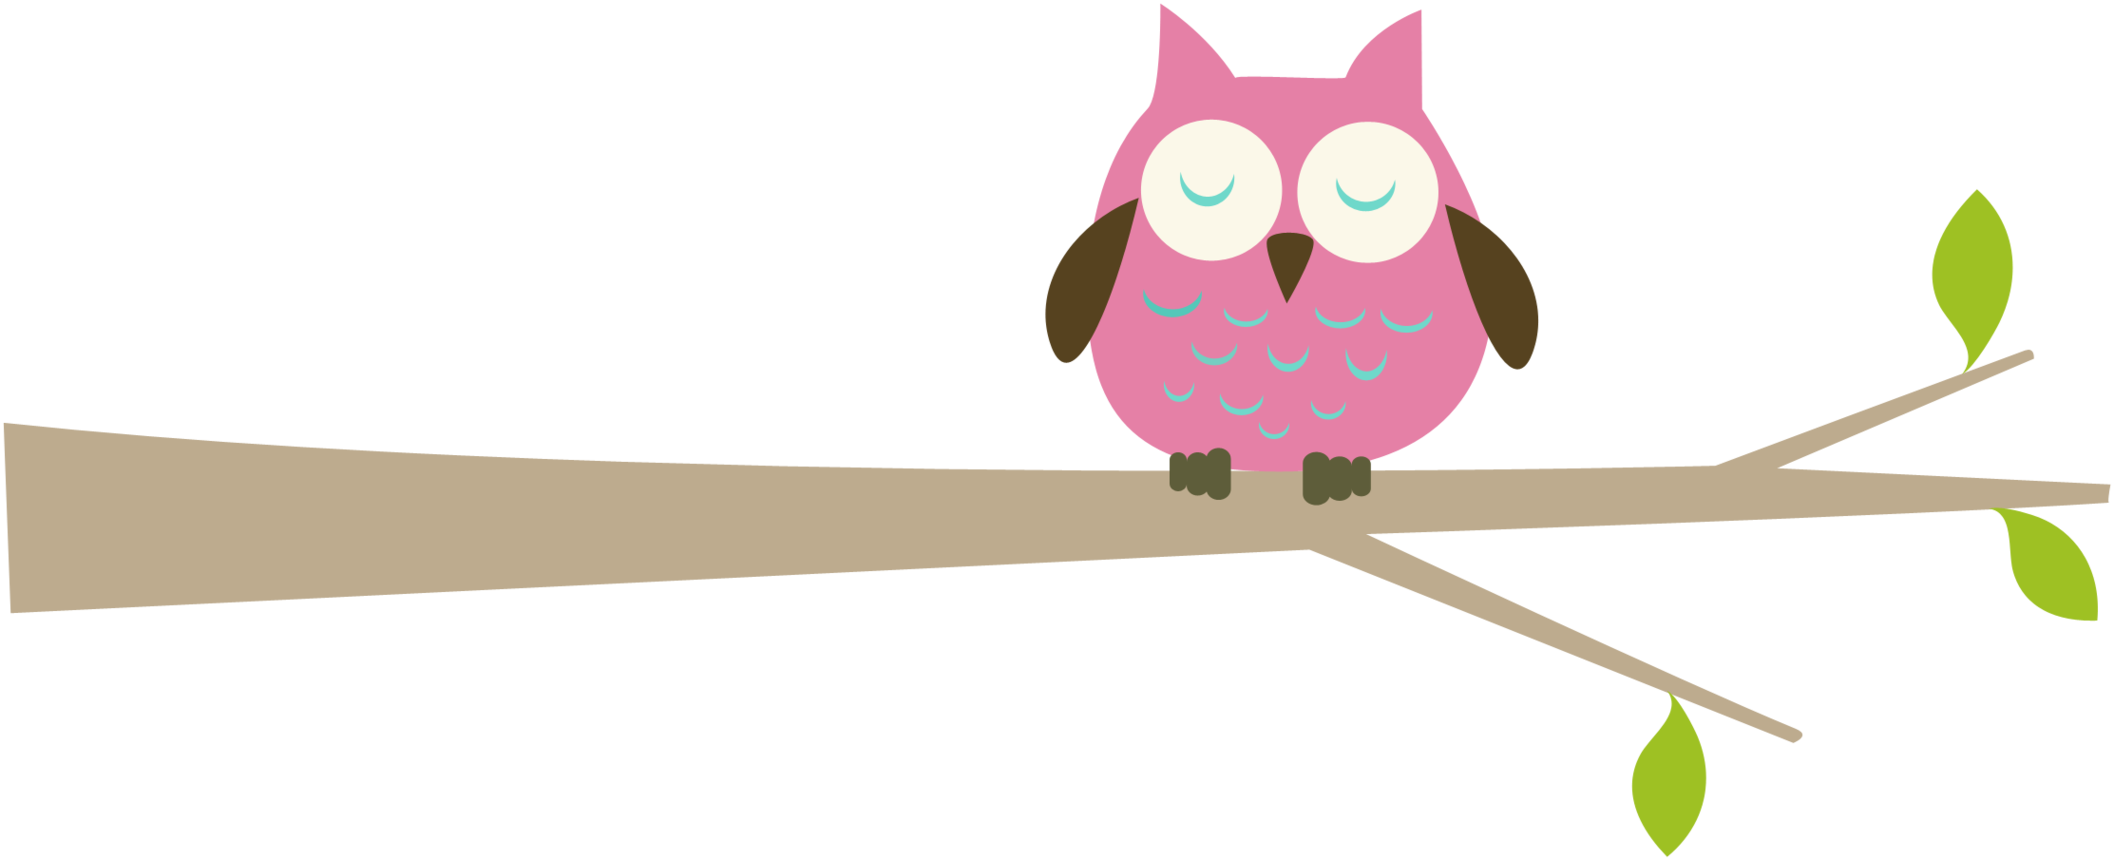 Tree clipart cute. Owl in the collection